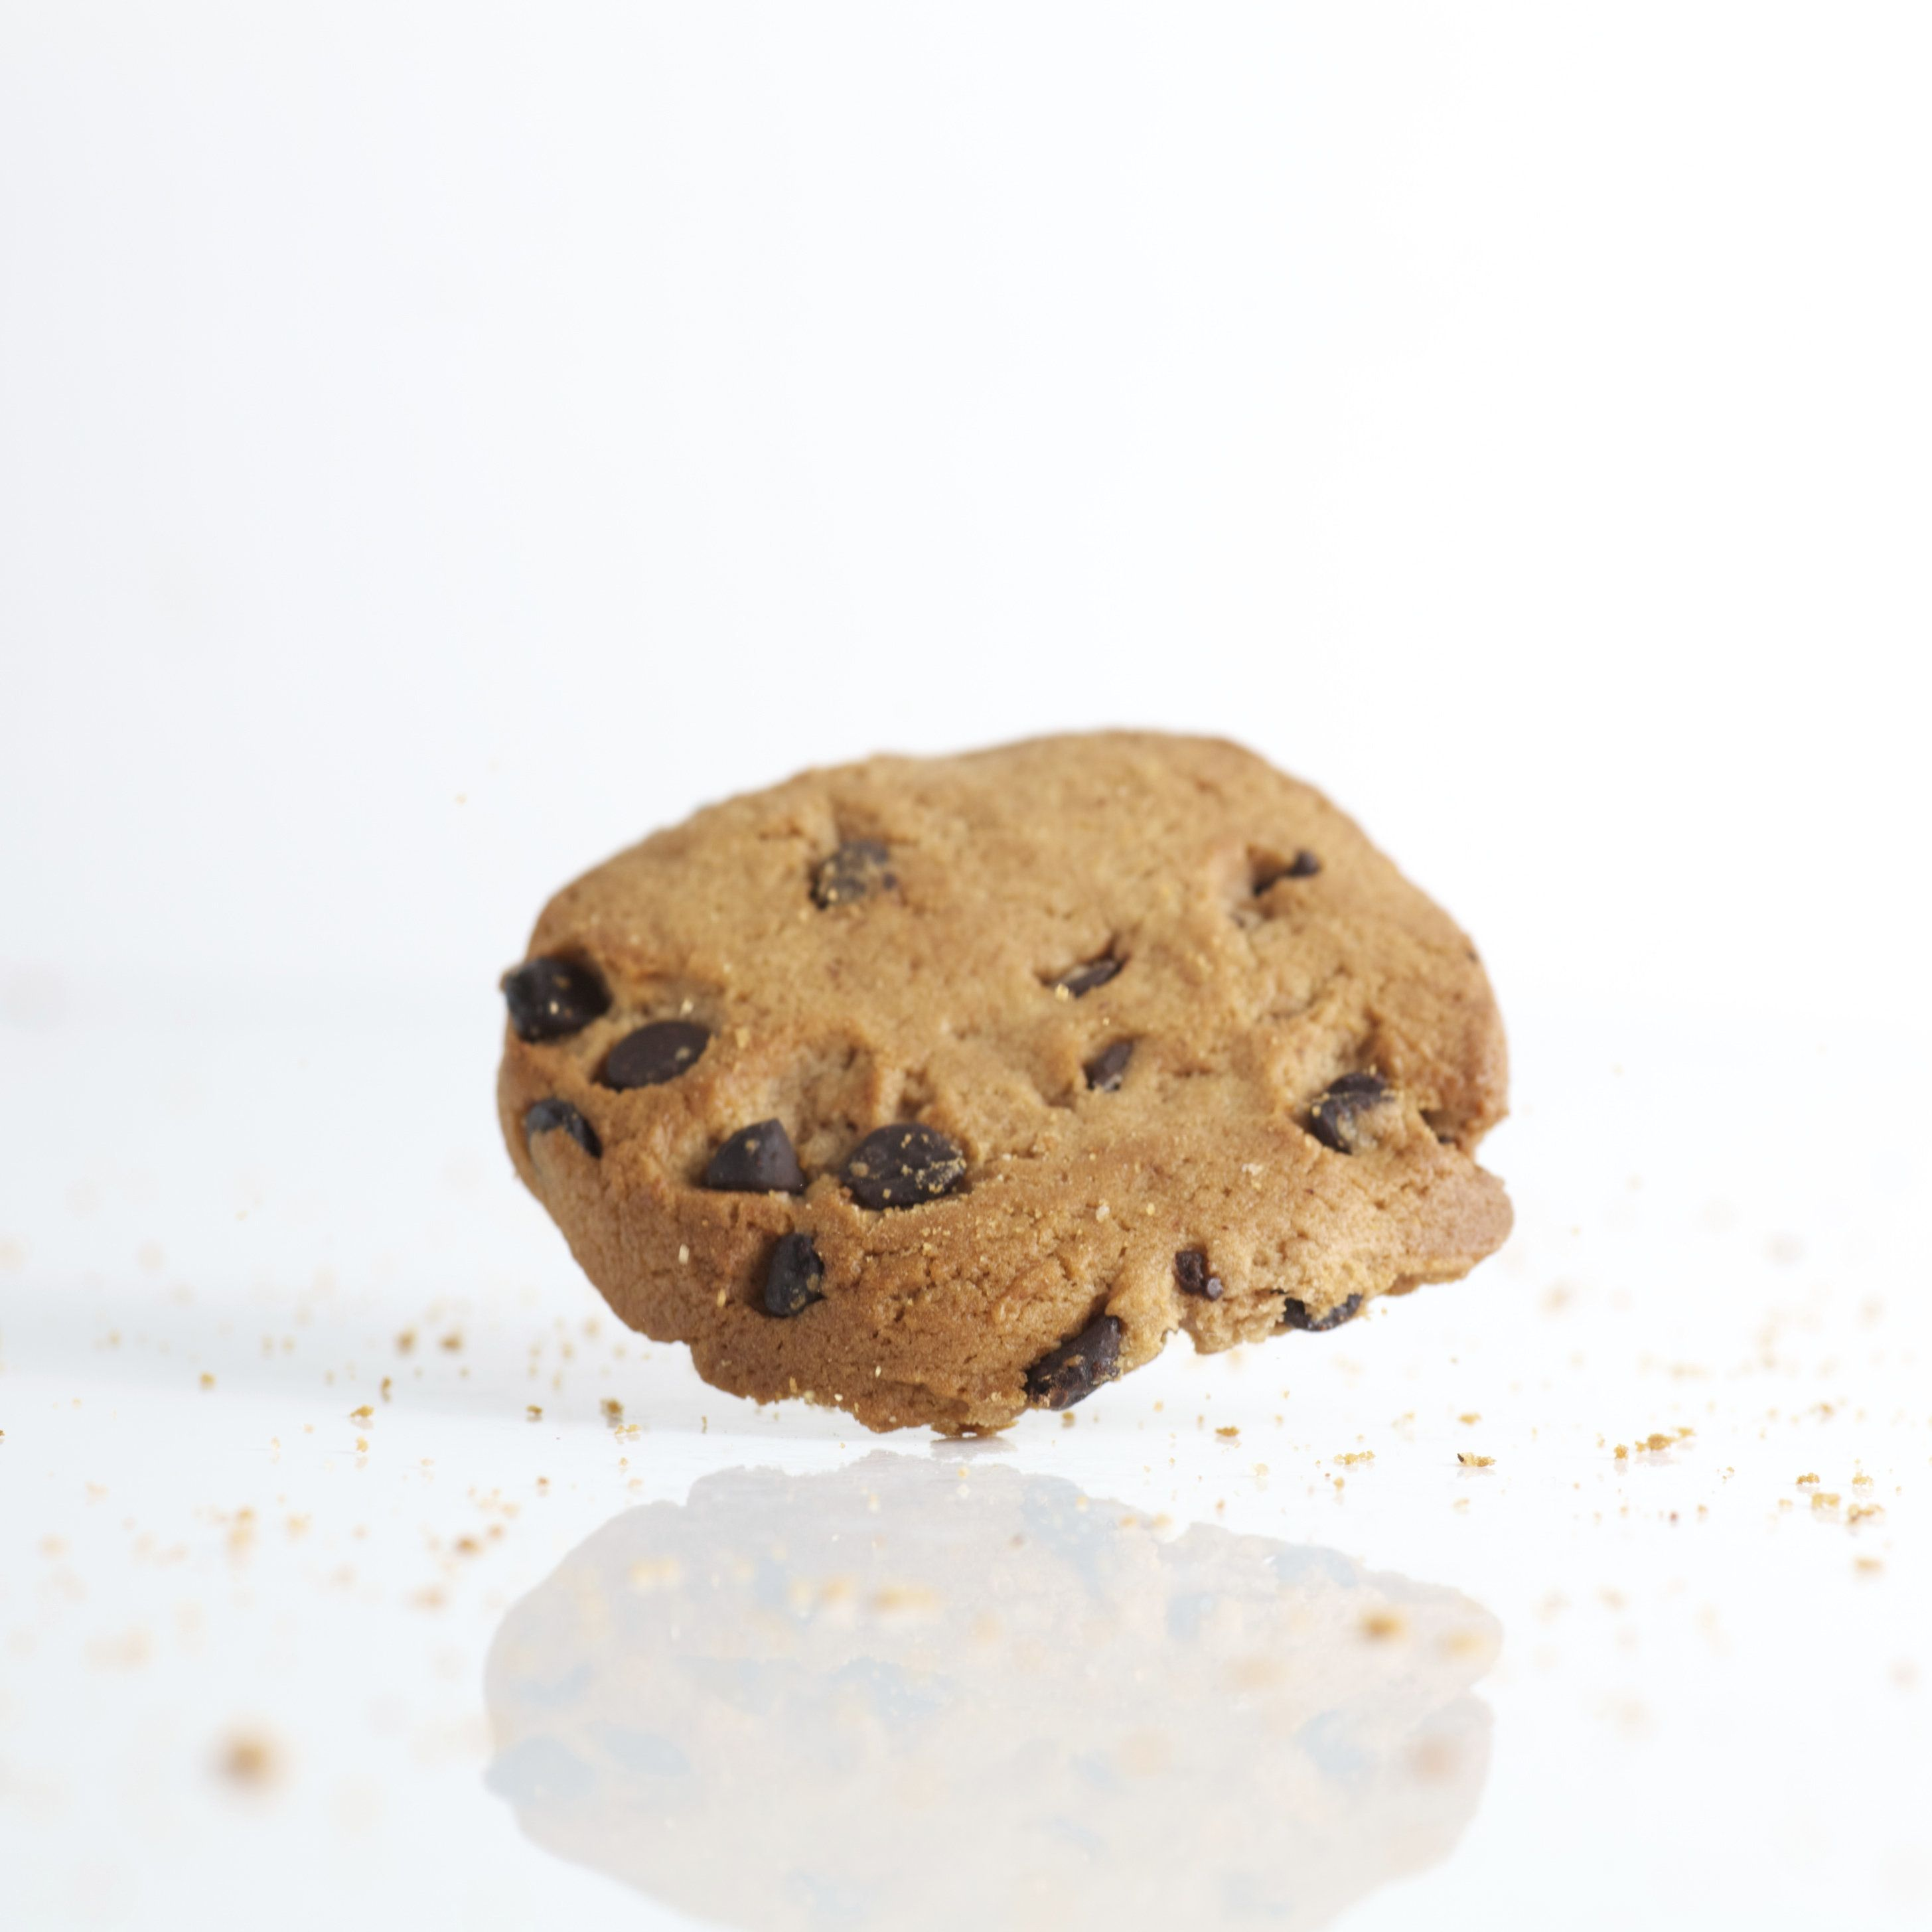 Chocolate chip cookie on white backgroud.